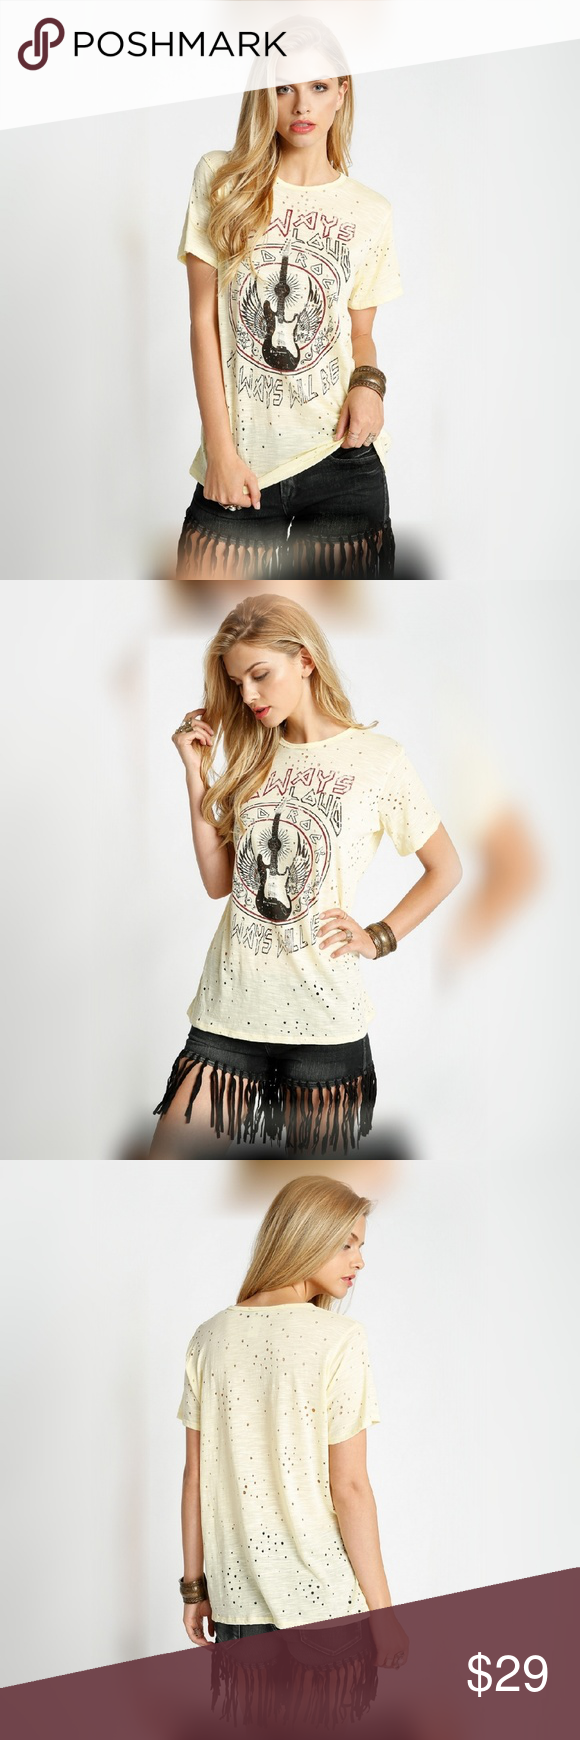 Wild Side Distressed Rock Top Express your wild side with this fun distressed loud and proud rock top. Light yellow. Tops